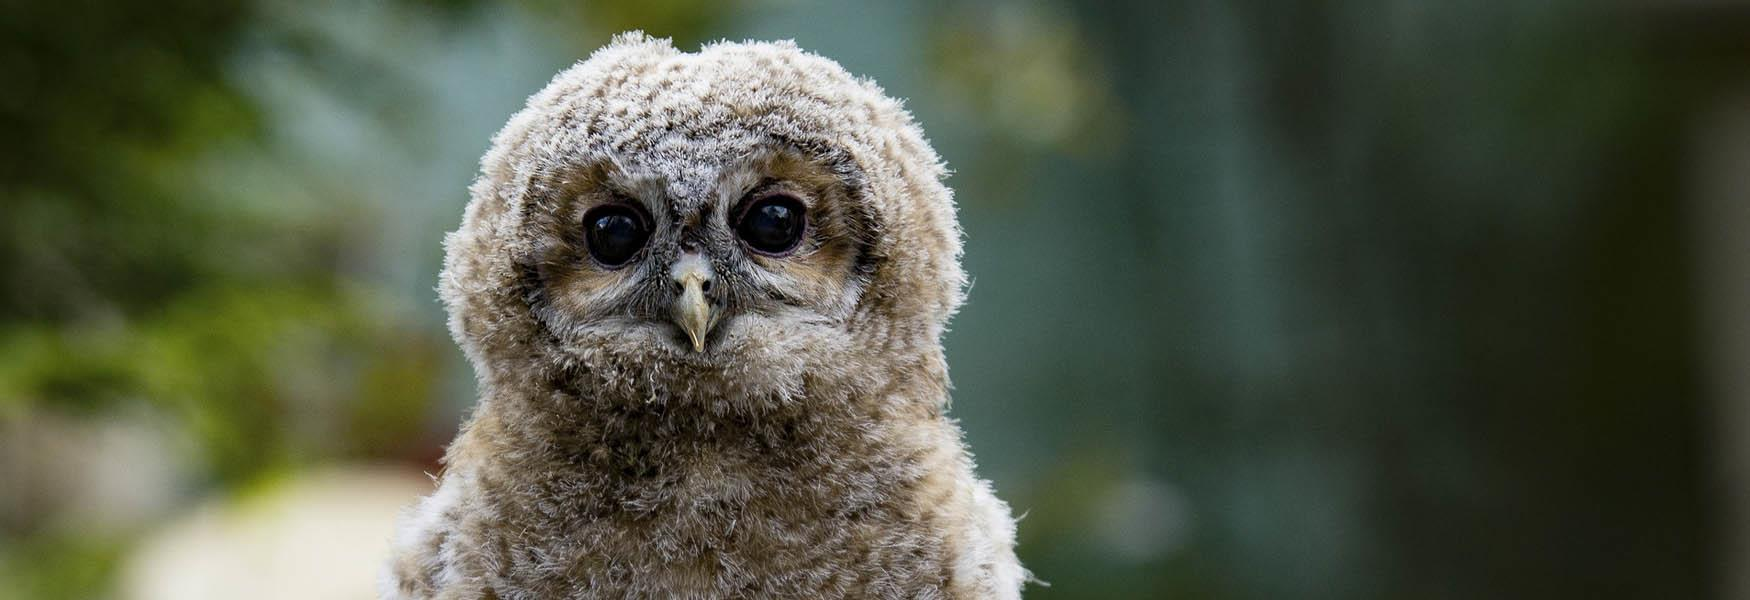 owl attractions